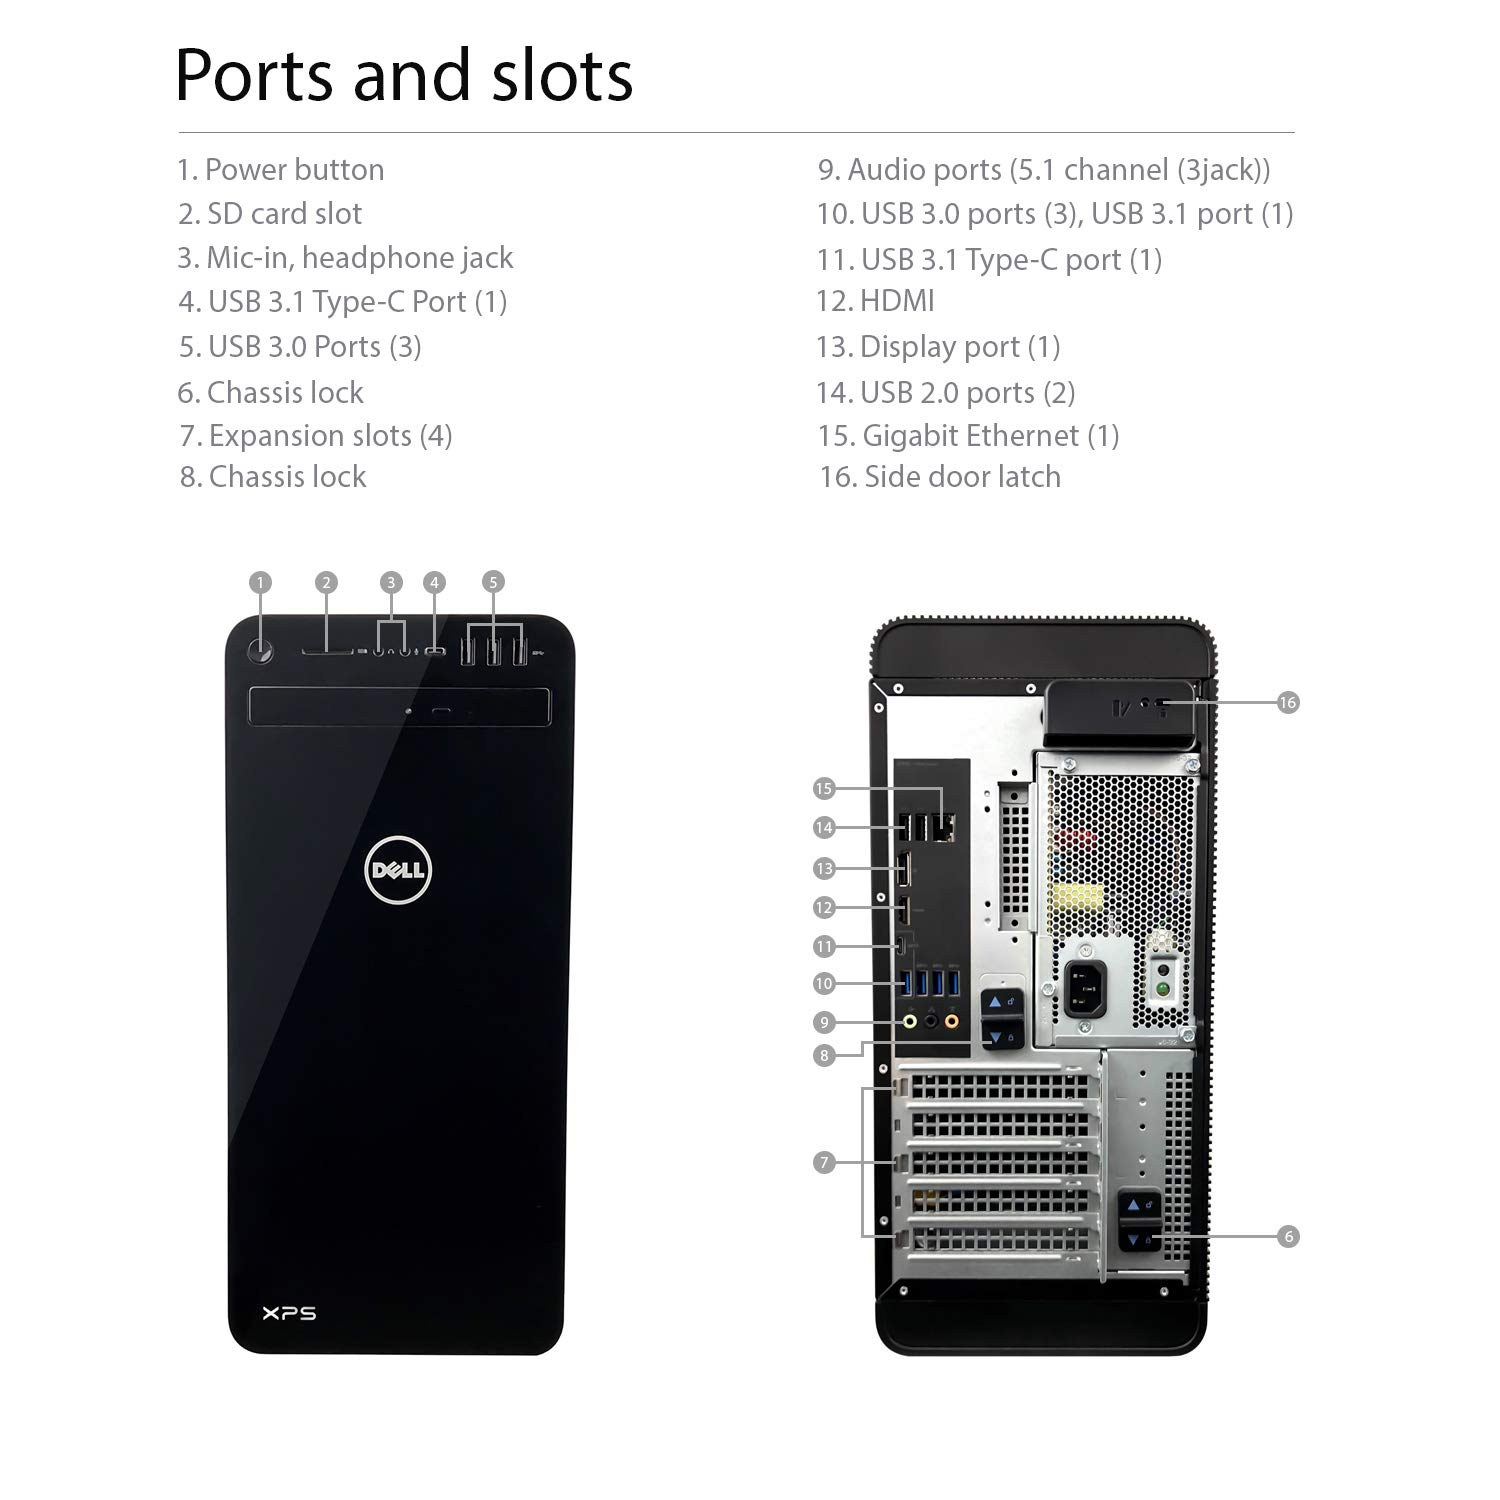 Dell Xps 8930 Tower Desktop 8th Gen Intel Core I7 Protection Circuit Board 2 1channel Speaker Neweggcom 8700 6 Up To 460 Ghz 16gb Ddr4 Memory 2tb Sata Hard Drive 4gb Nvidia Geforce Gtx